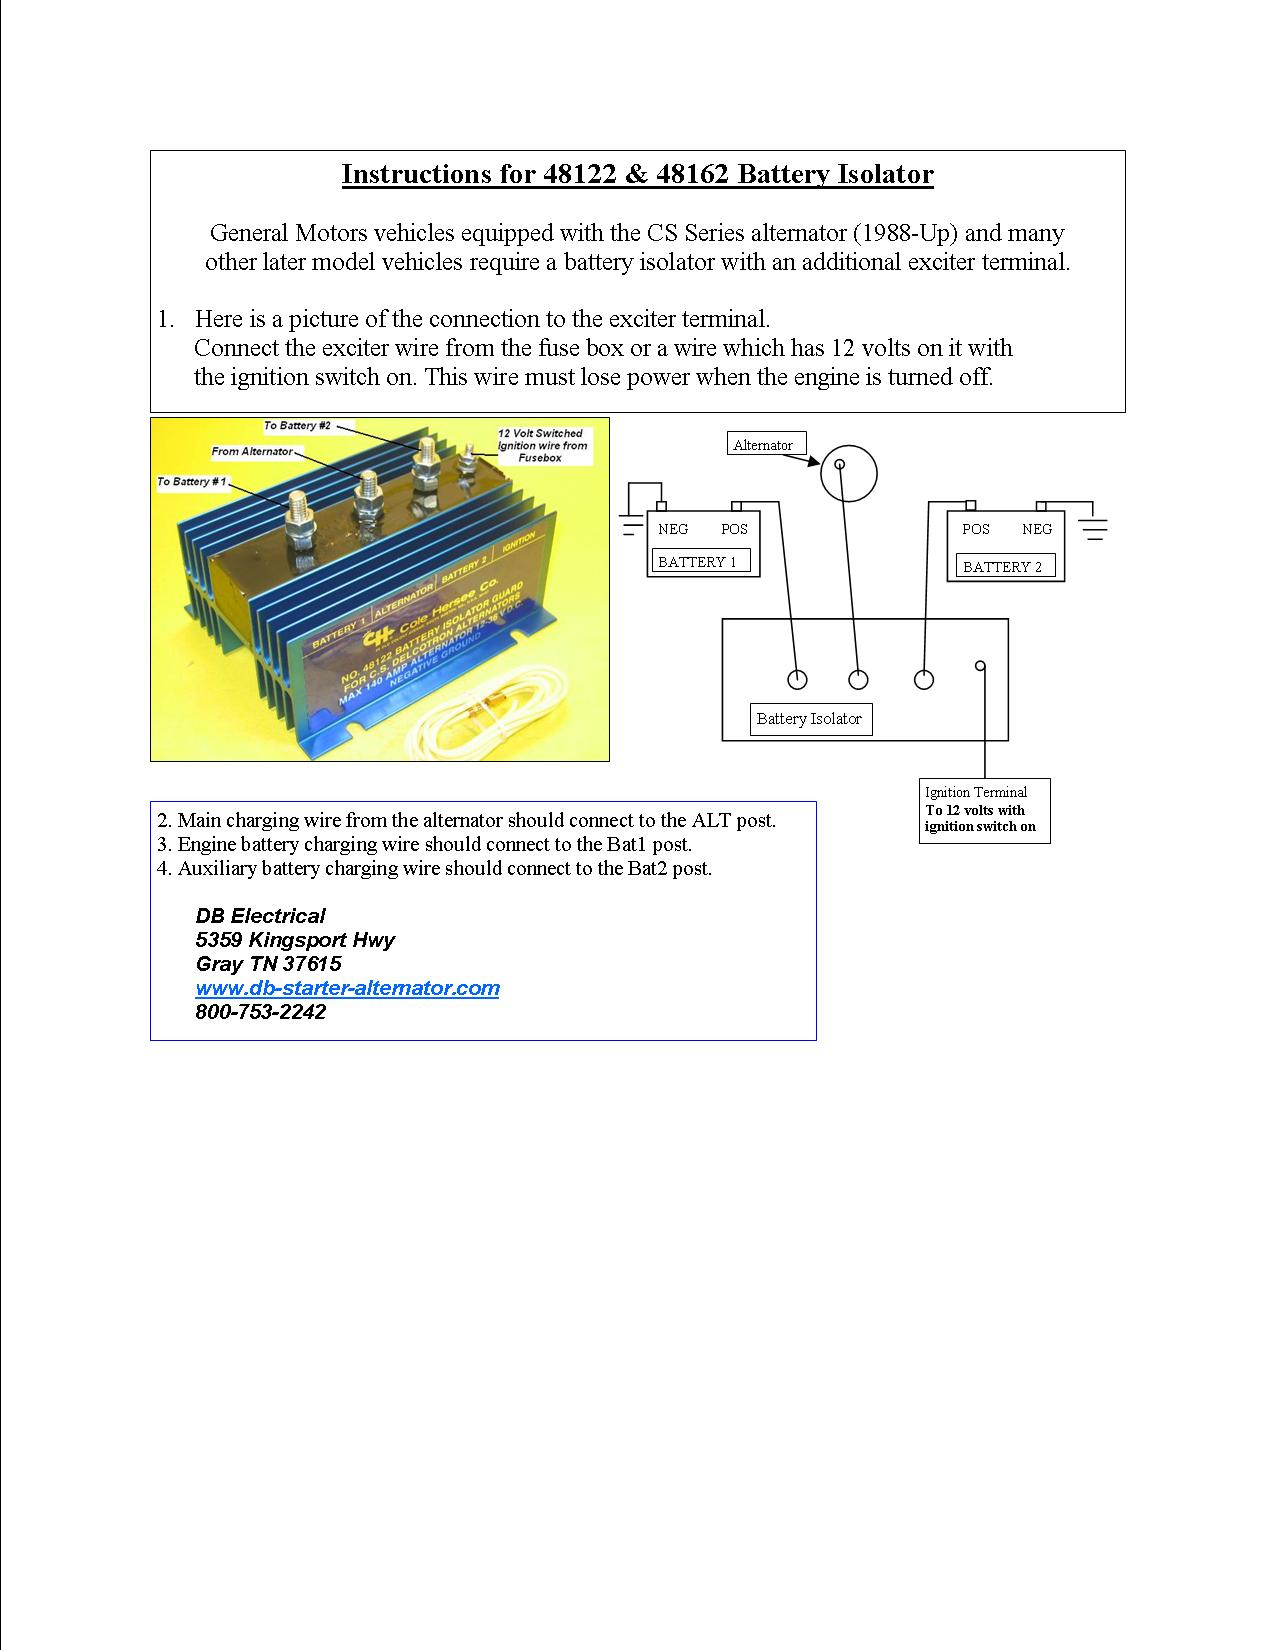 hight resolution of ib 750 battery isolator wiring diagram wiring librarycole hersee battery isolator wiring diagram free vehicle wiring